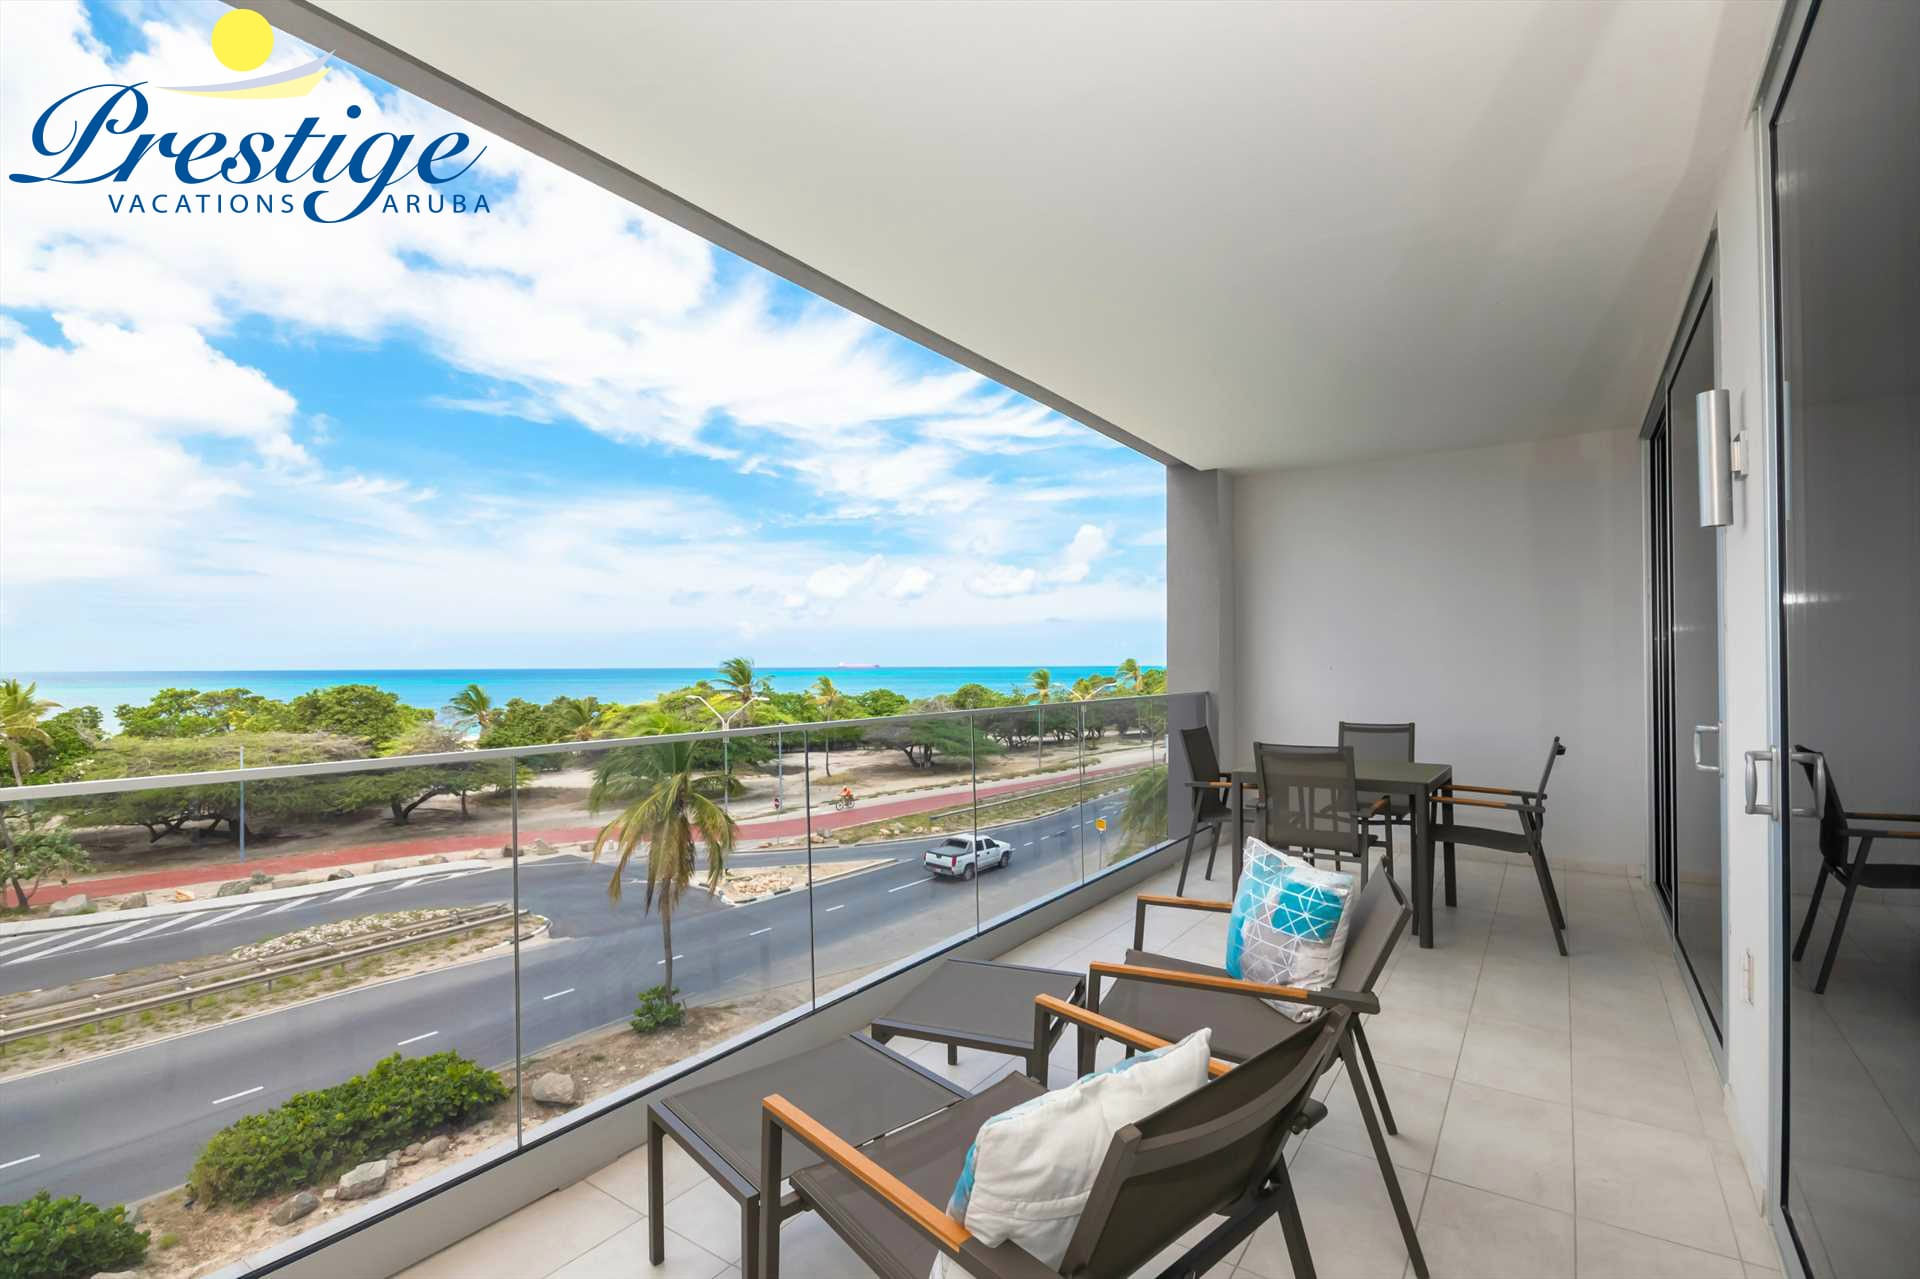 Enjoy Aruba's sunny weather with this amazing beach views from the balcony